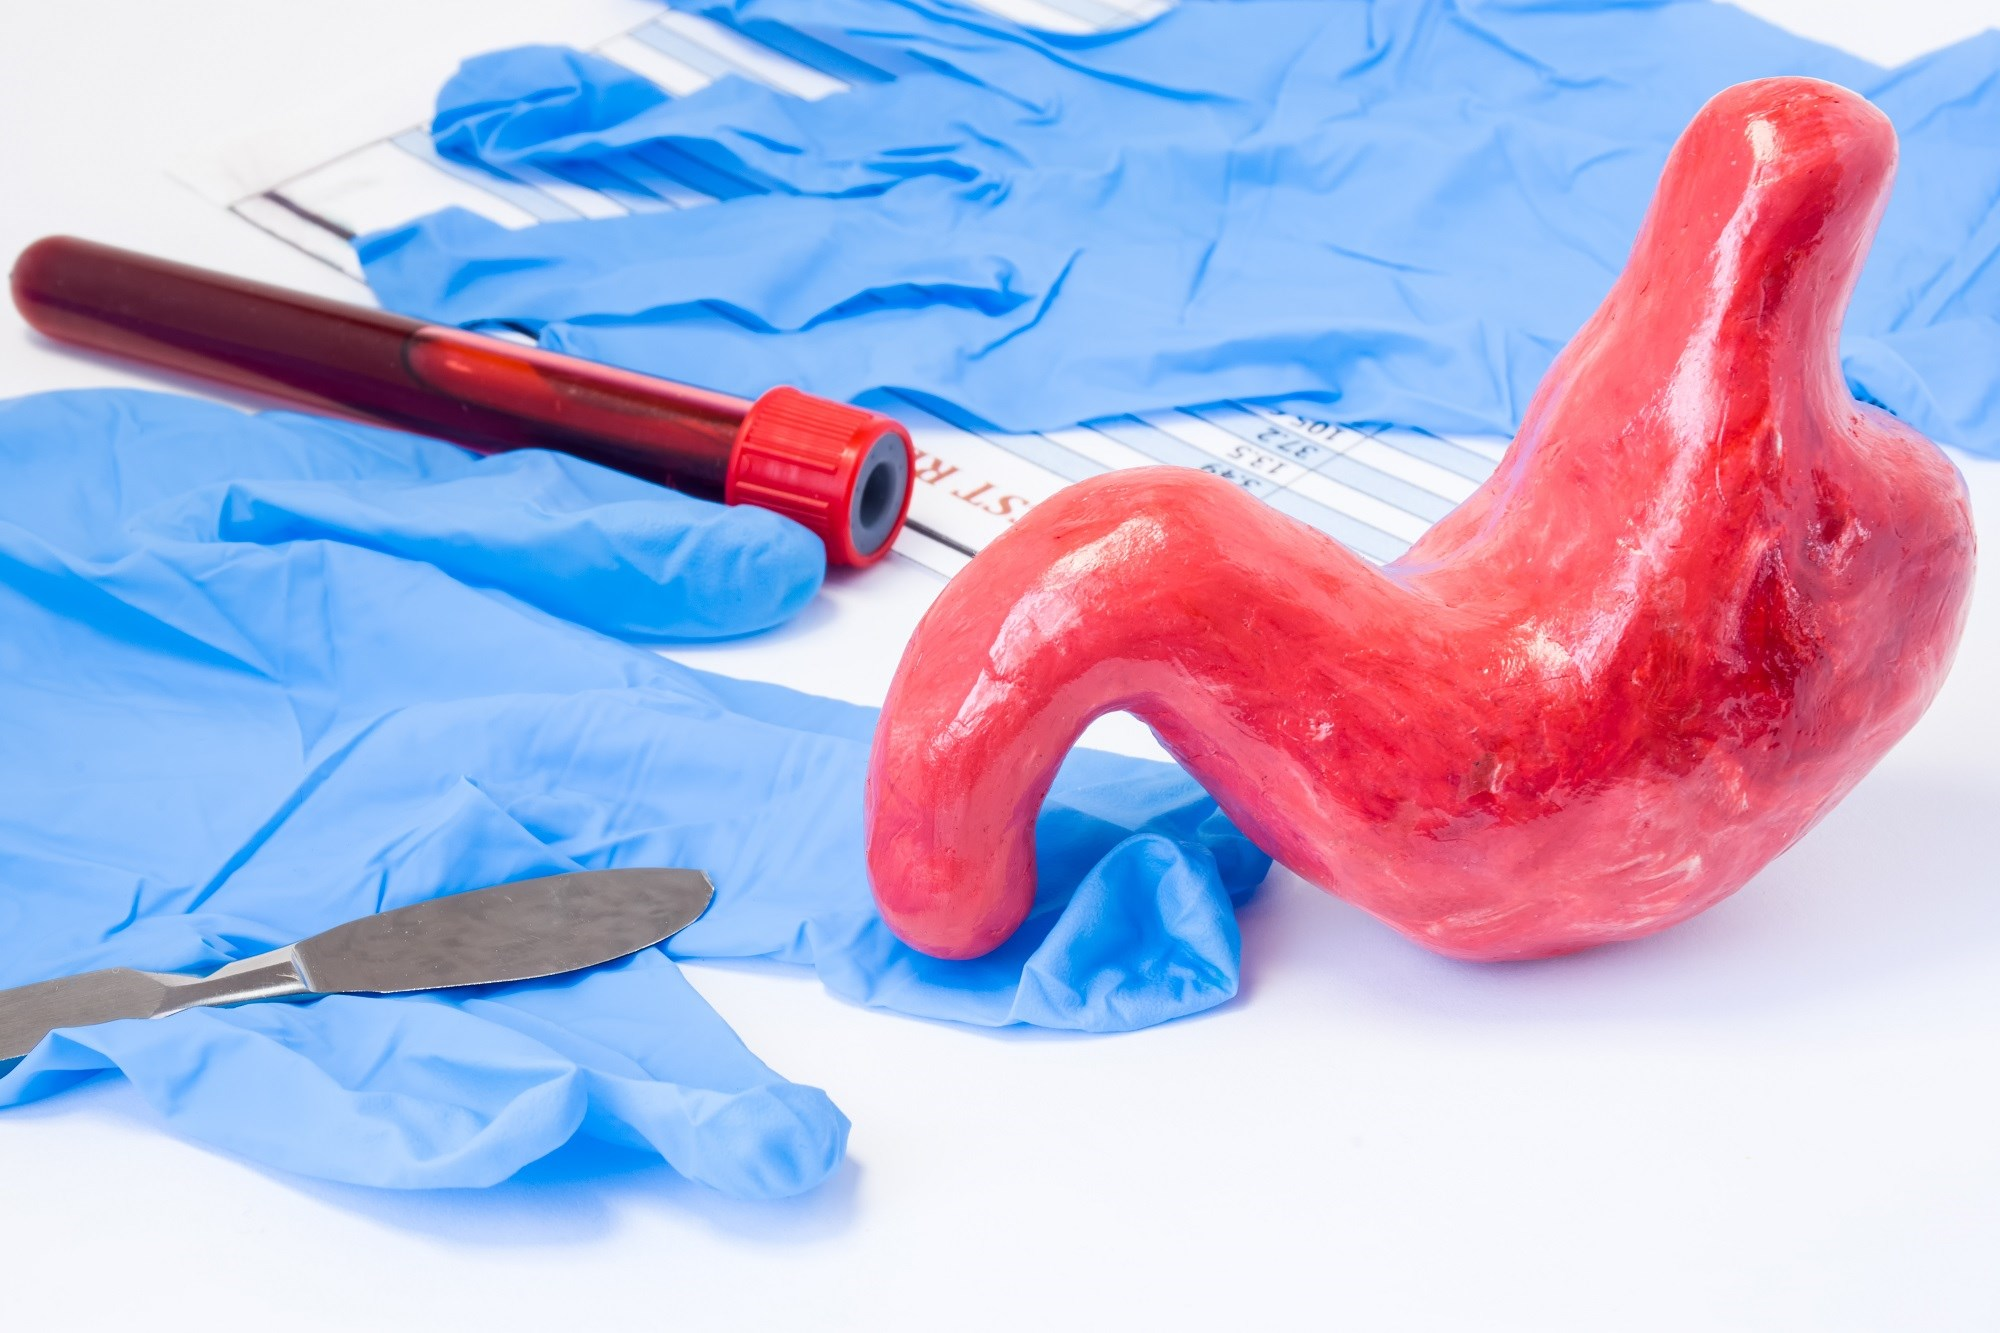 Safety and Effectiveness of the Most Common Bariatric Procedures Examined